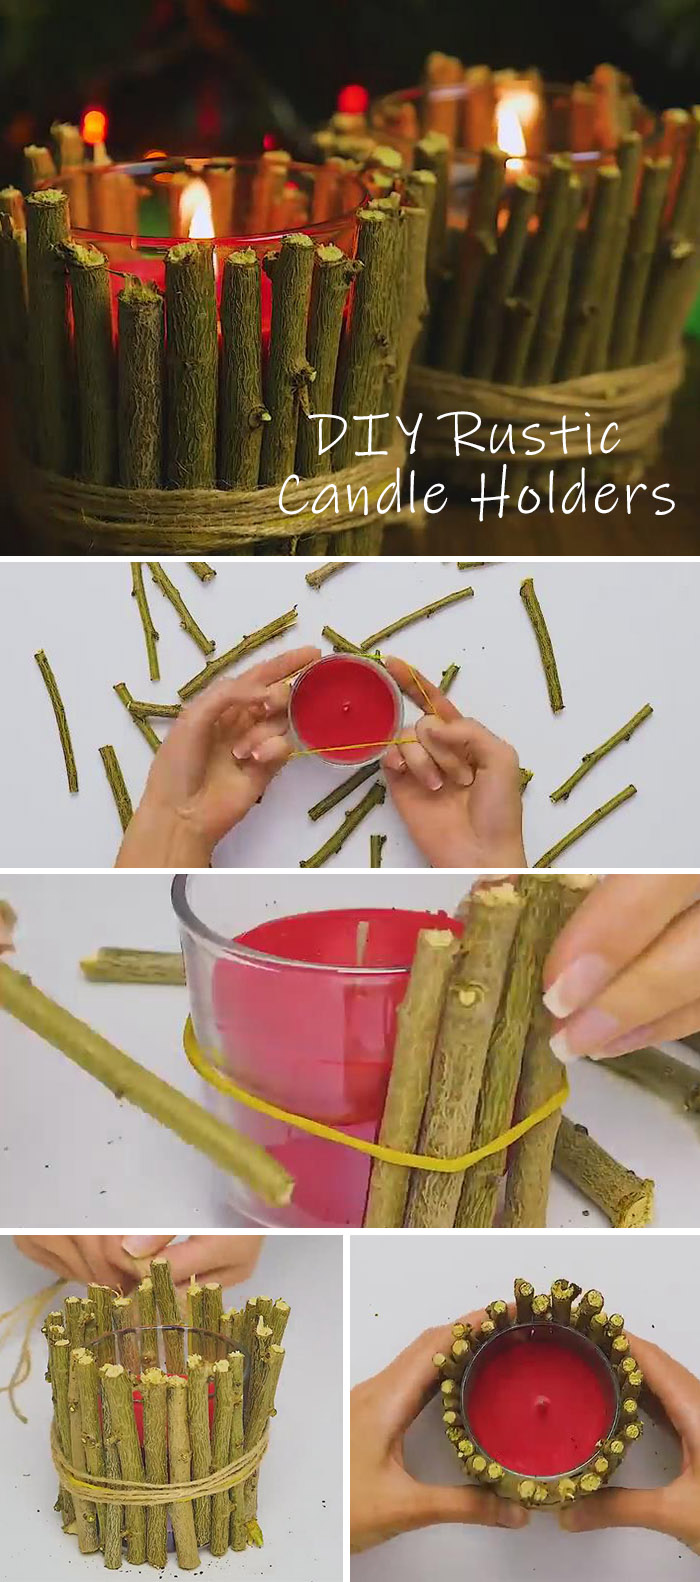 DIY rustic candle holders with wood sticks